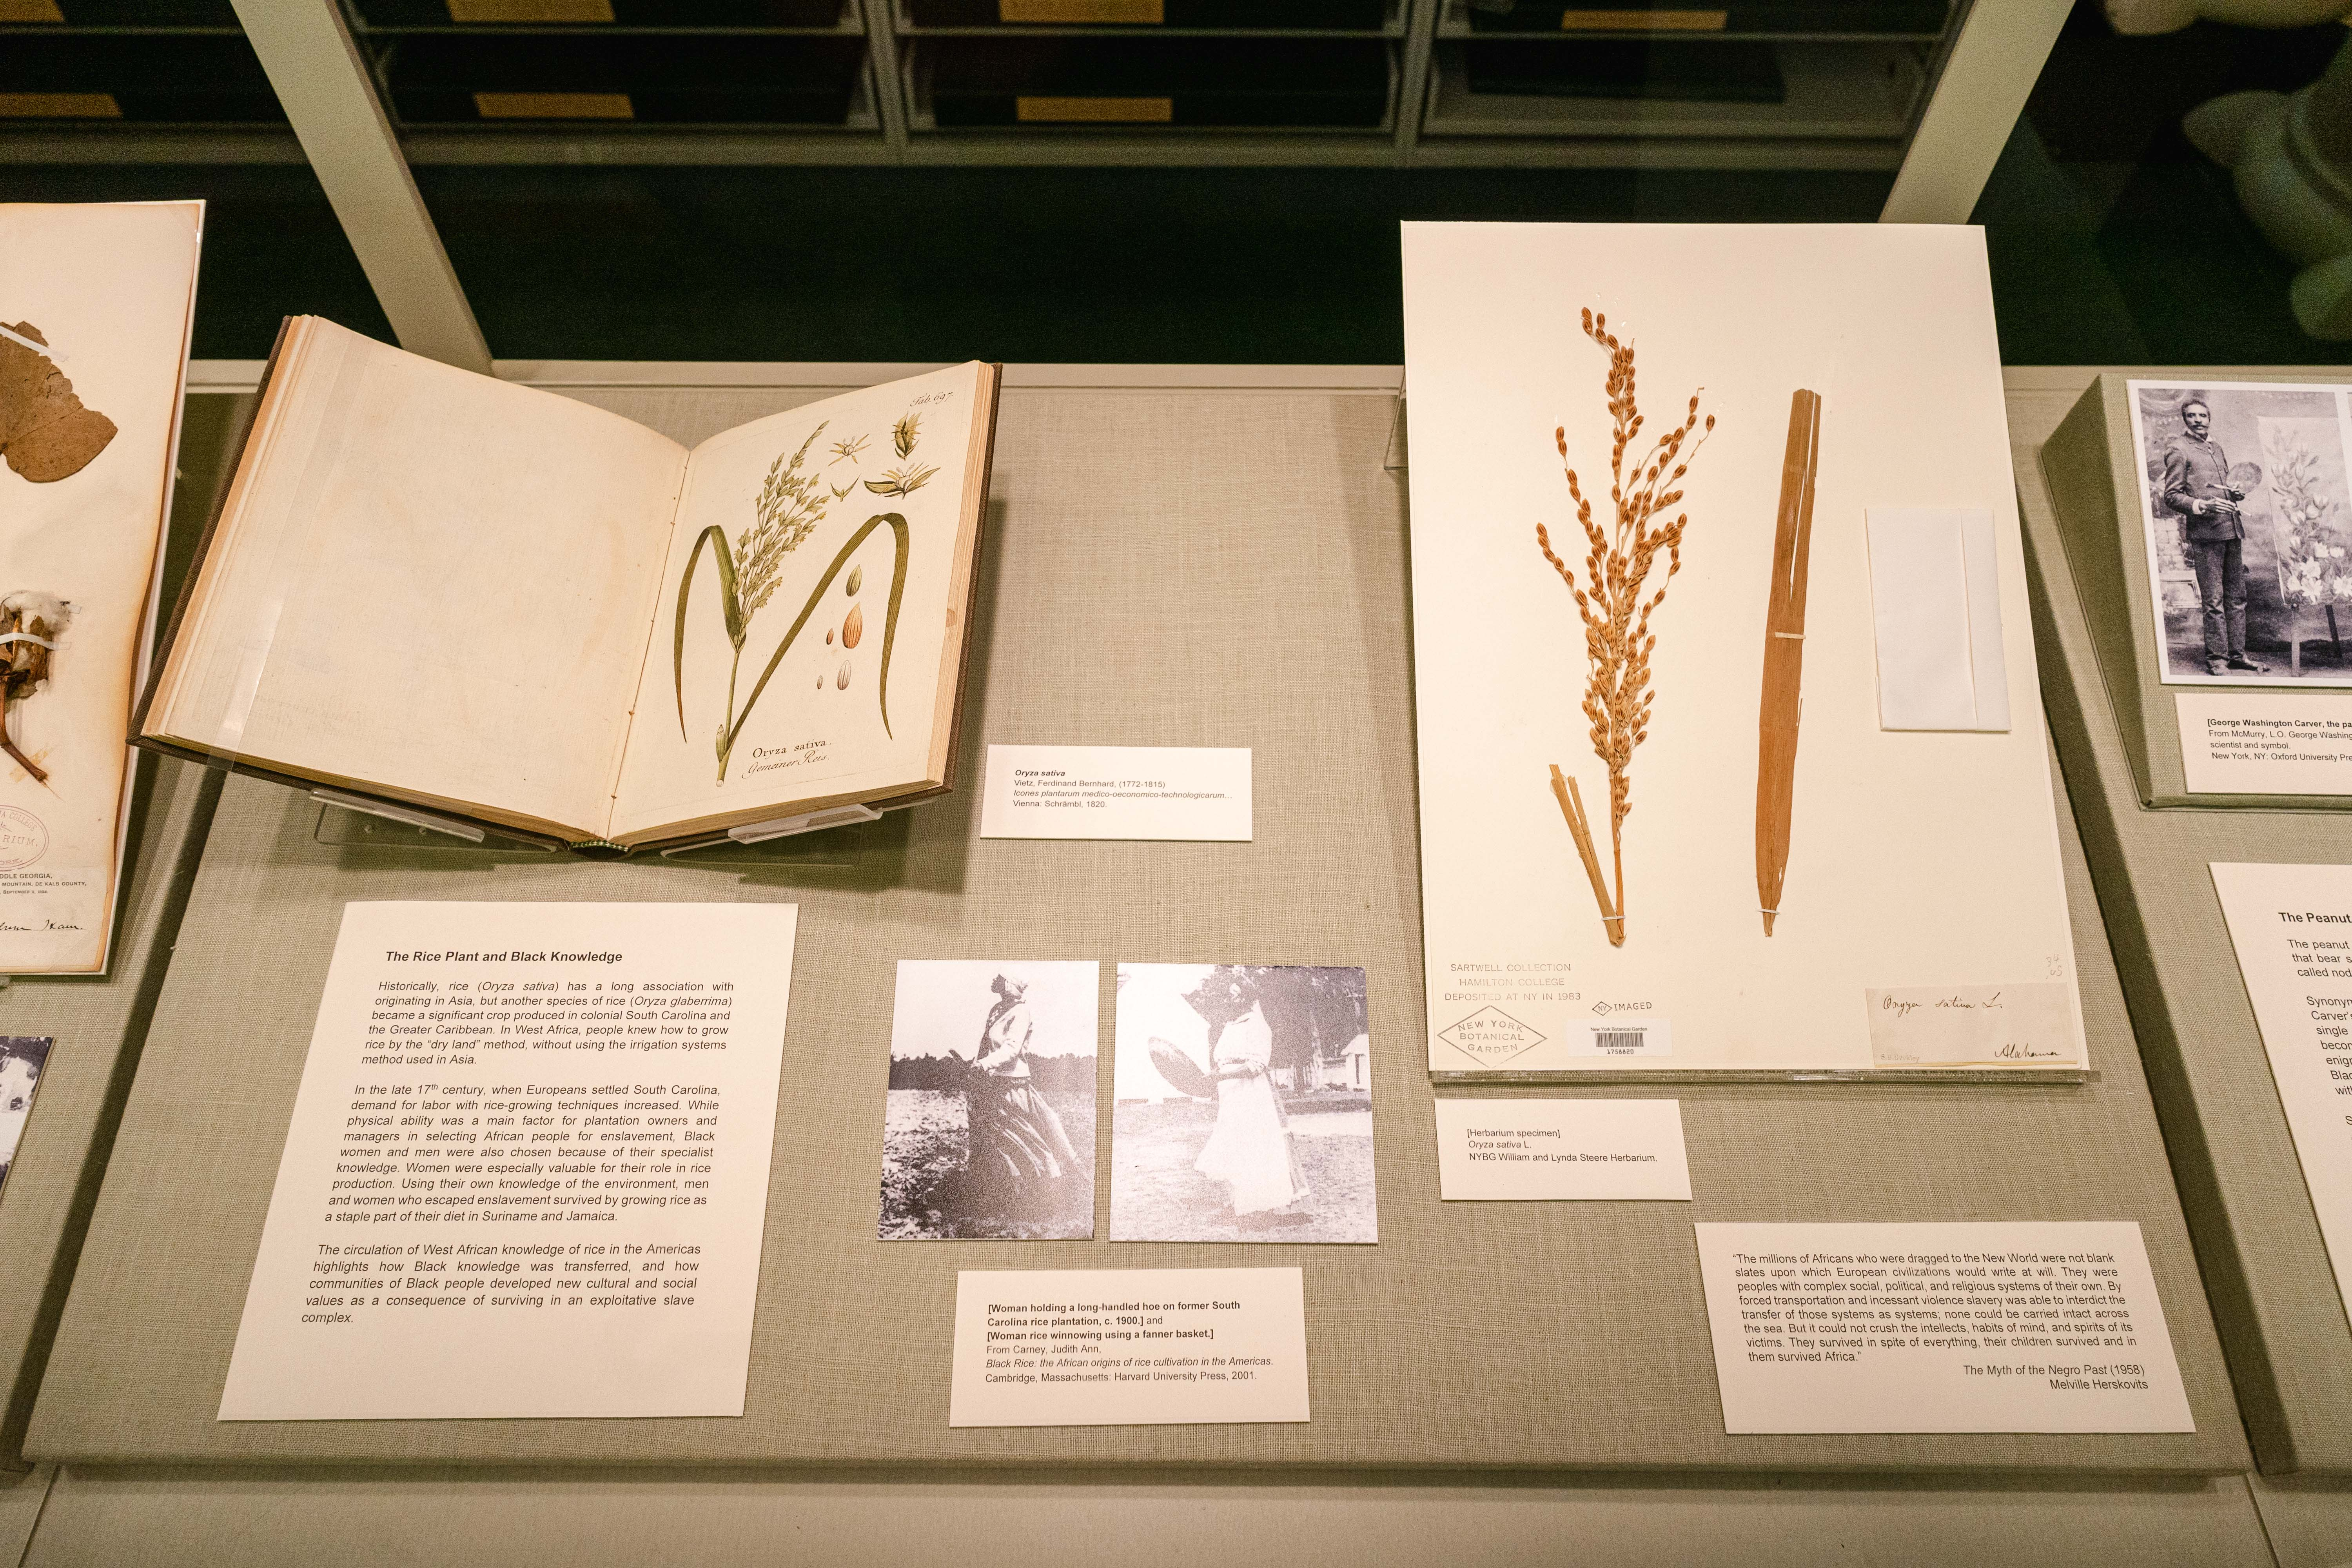 Rare Book Room: The Rice Plant and Black Knowledge